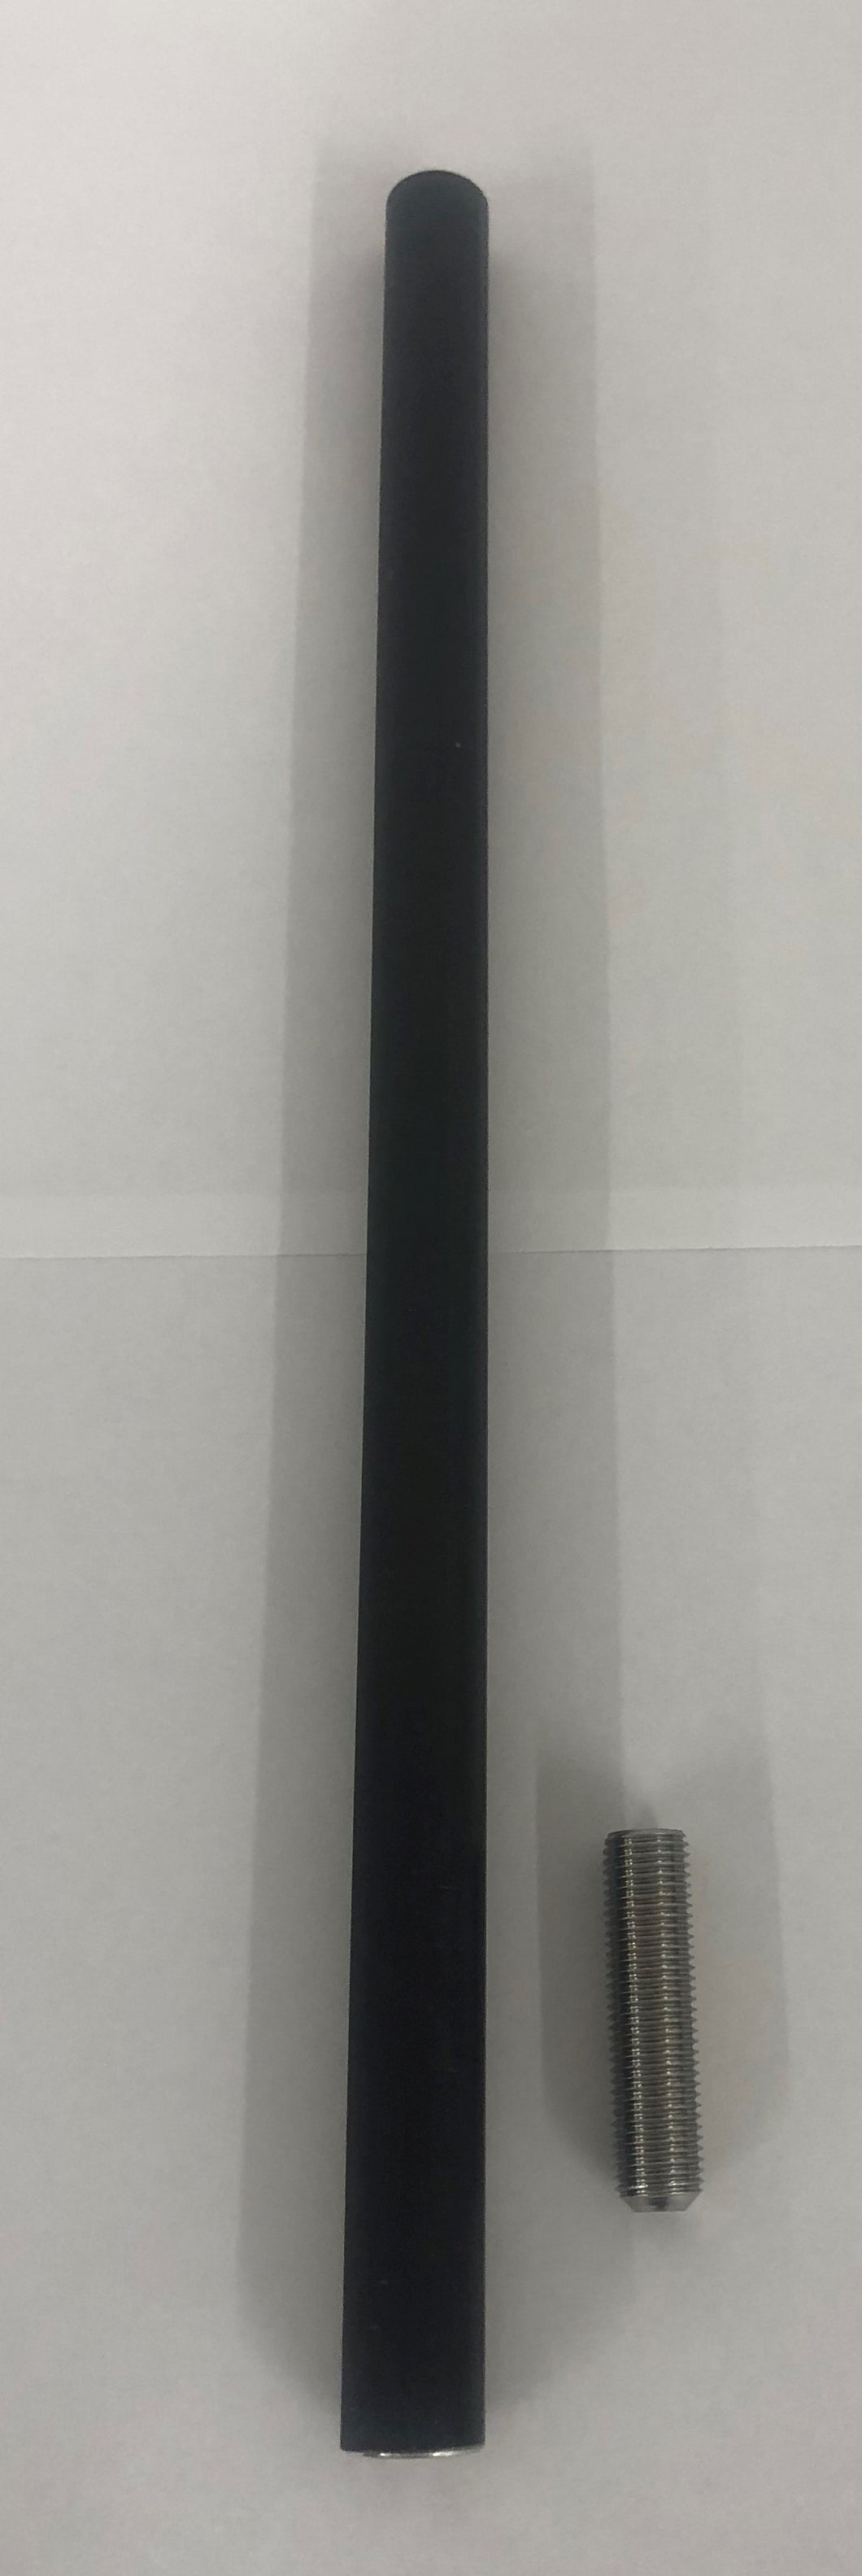 CapHat Extension Rod - 1 foot